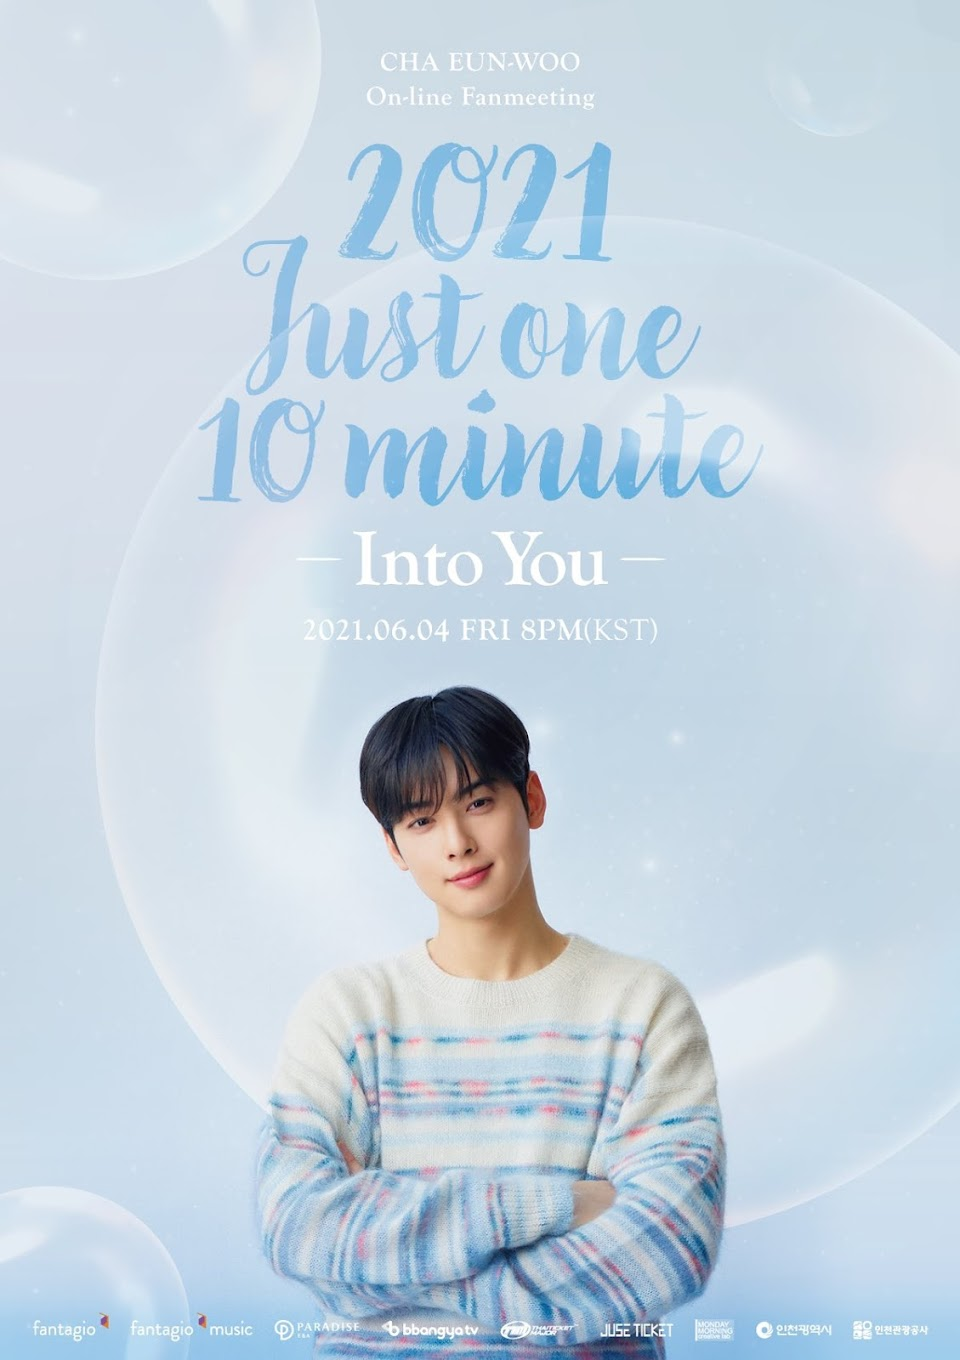 just one 10 minutes